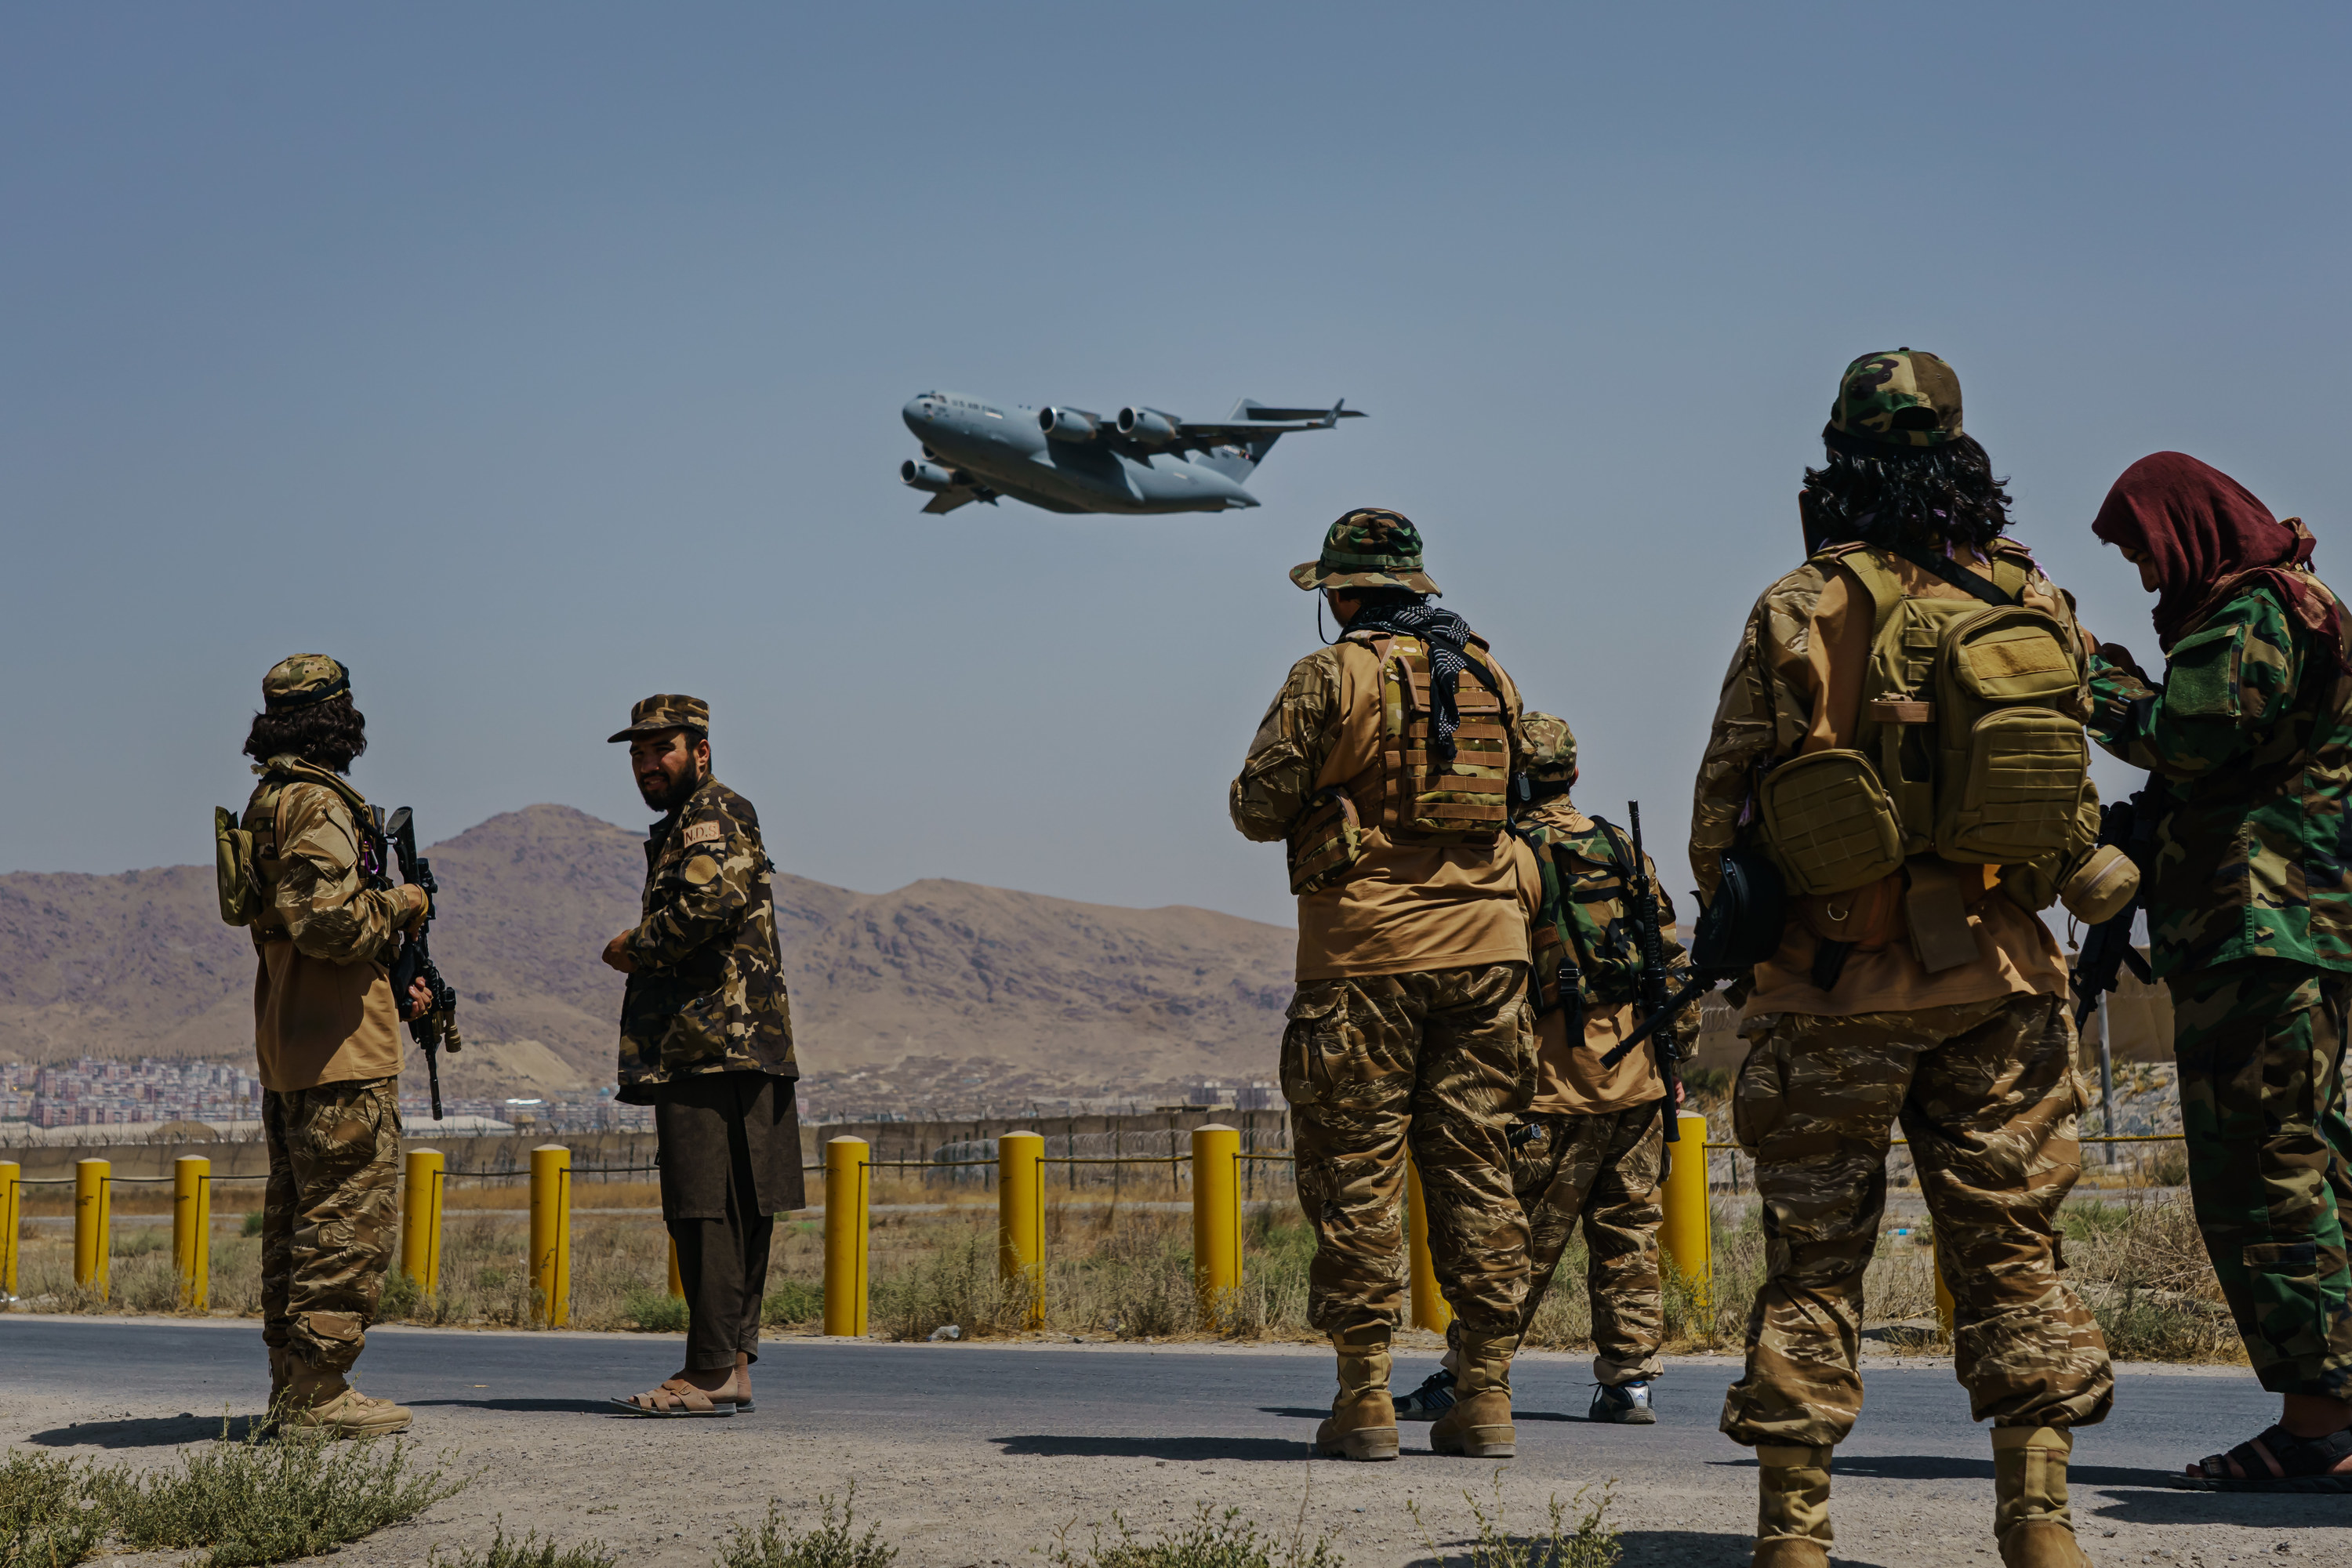 Taliban fighters stand outside Hamid Karzai International Airport as a plane flies over